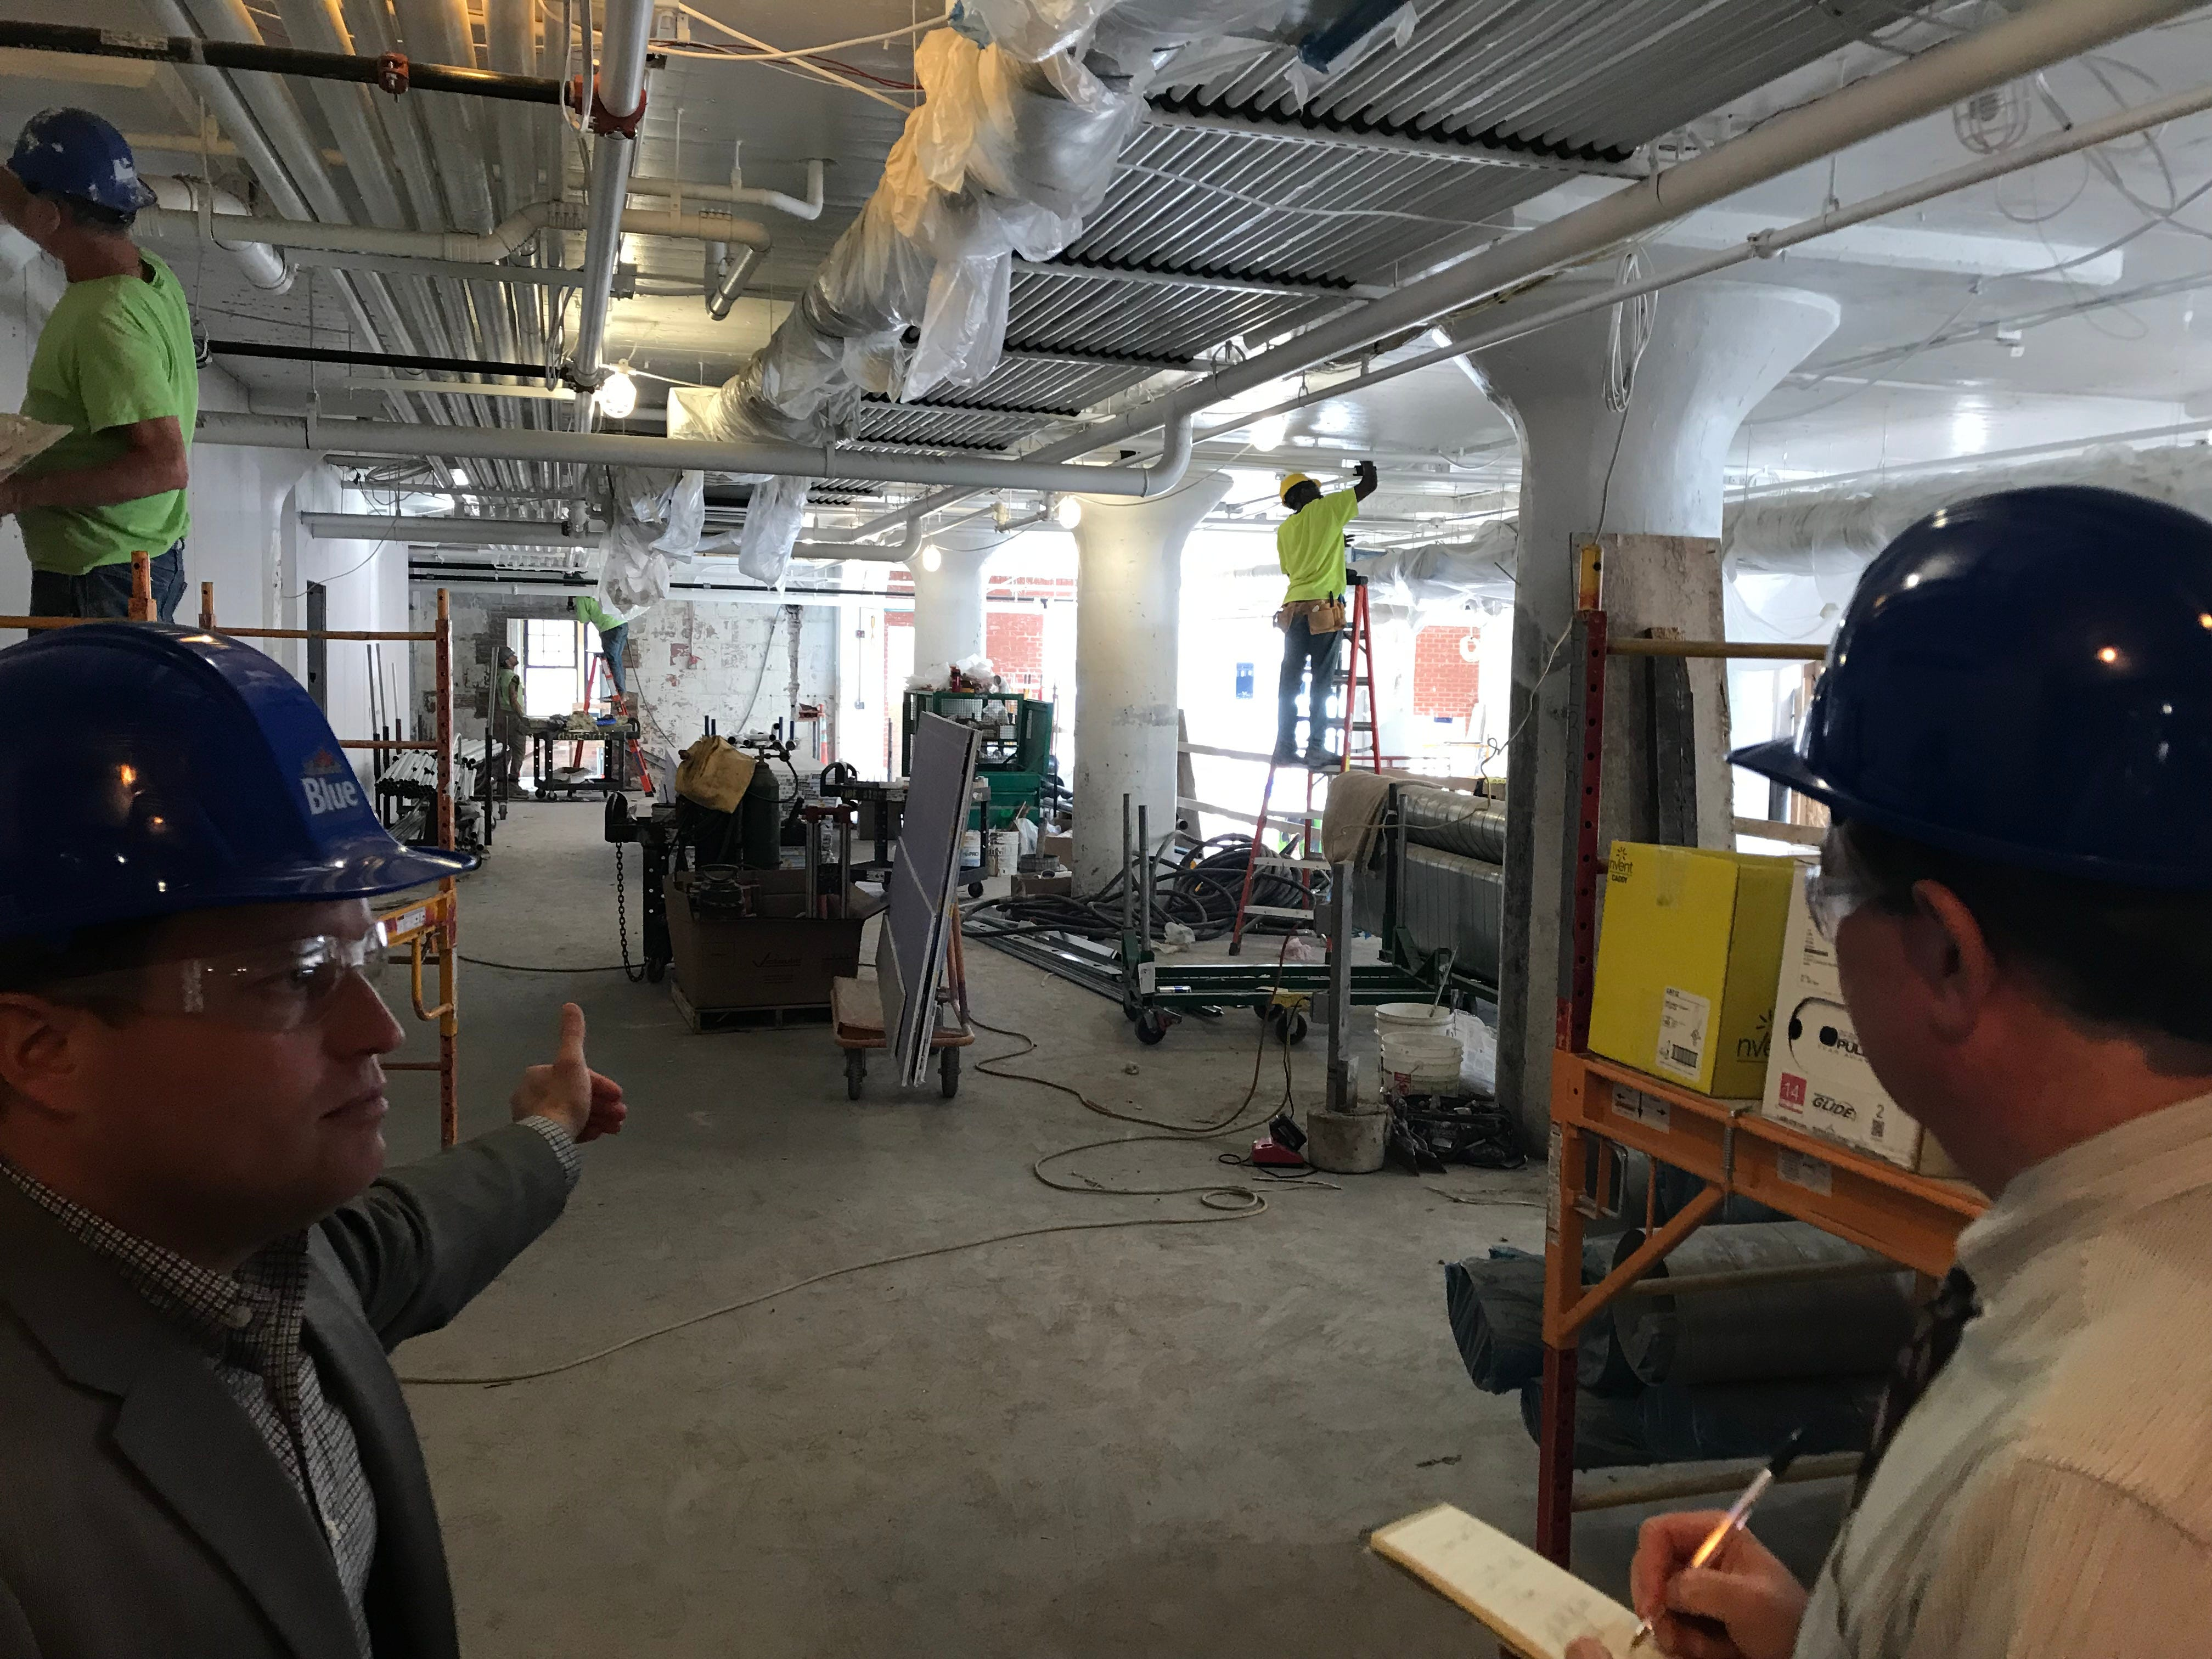 Don Heins, left, head of communications for Pegula Sports and Entertainment, leads a tour through the Labatt Brew House in Buffalo.